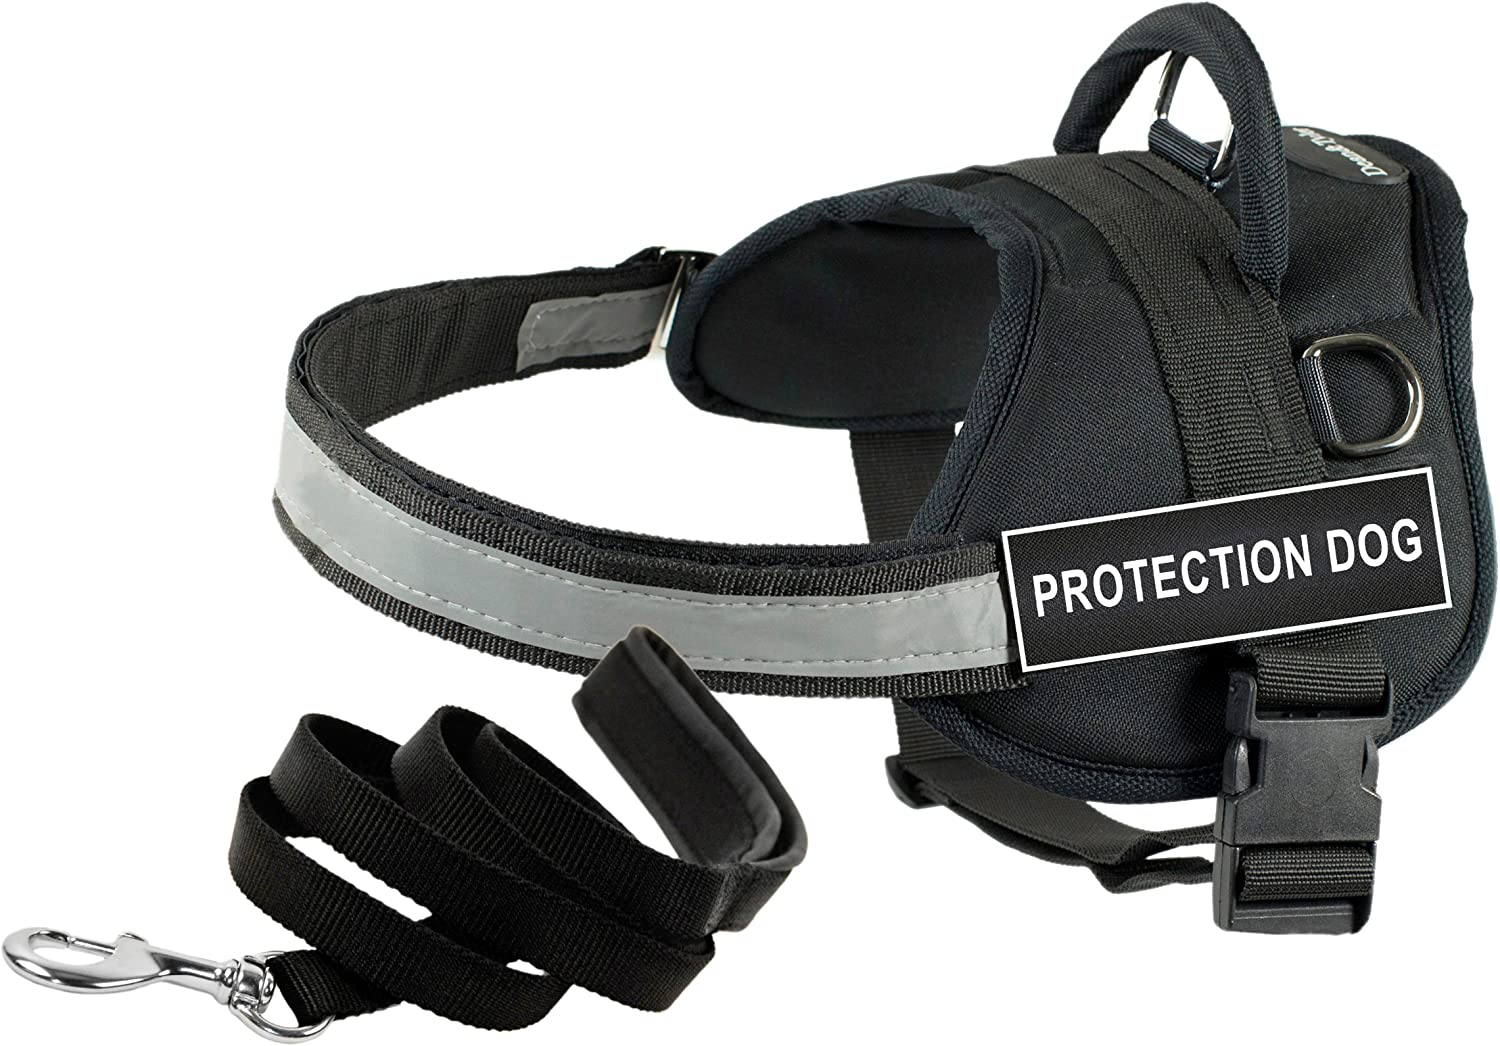 Dean & Tyler's DT Works PredECTION DOG Harness, XXSmall, with 6 ft Padded Puppy Leash.